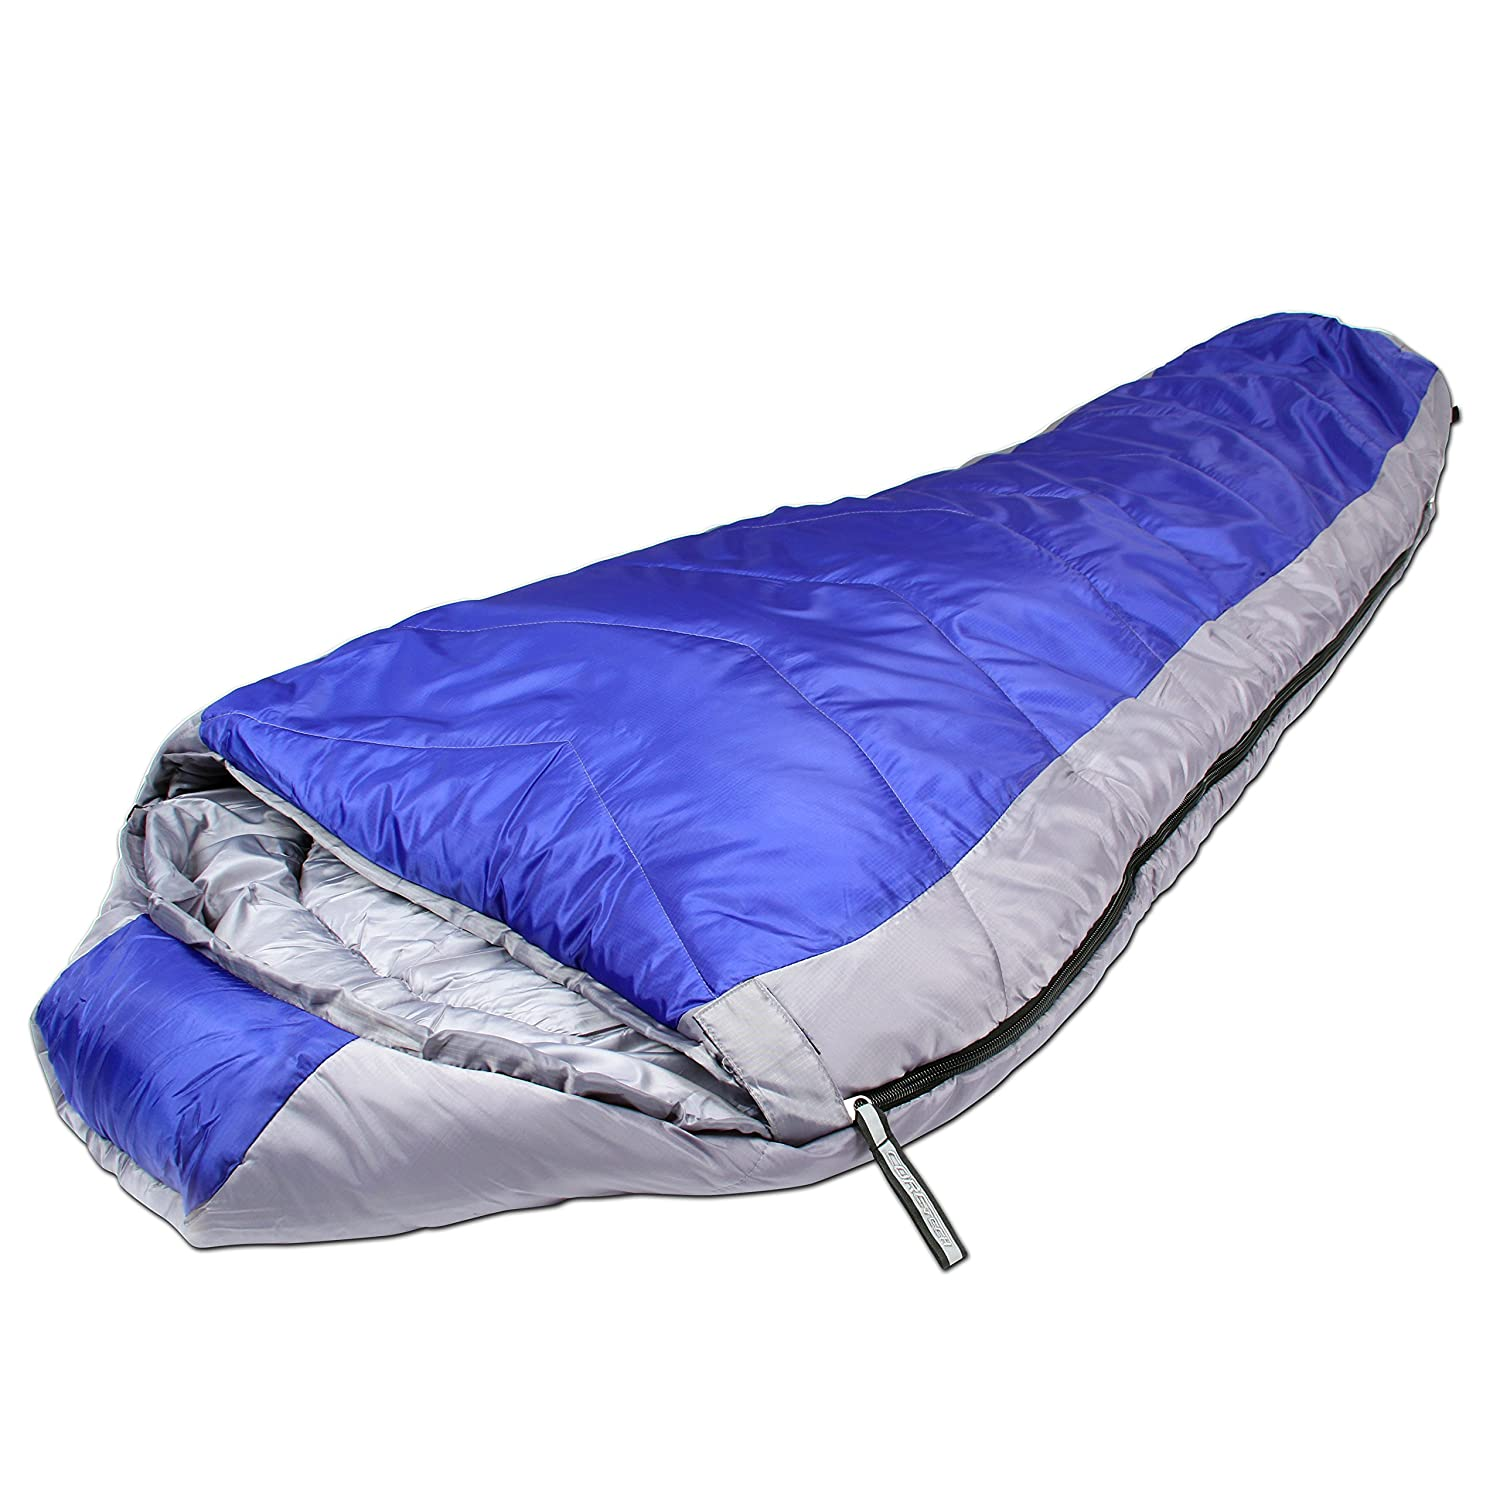 Northstar Tactical Coretech Mummy, Multi Layer Core Sleeping Bag, with Camping Compression Stuff Storage Bag Northstar Bags Coretech 3.5